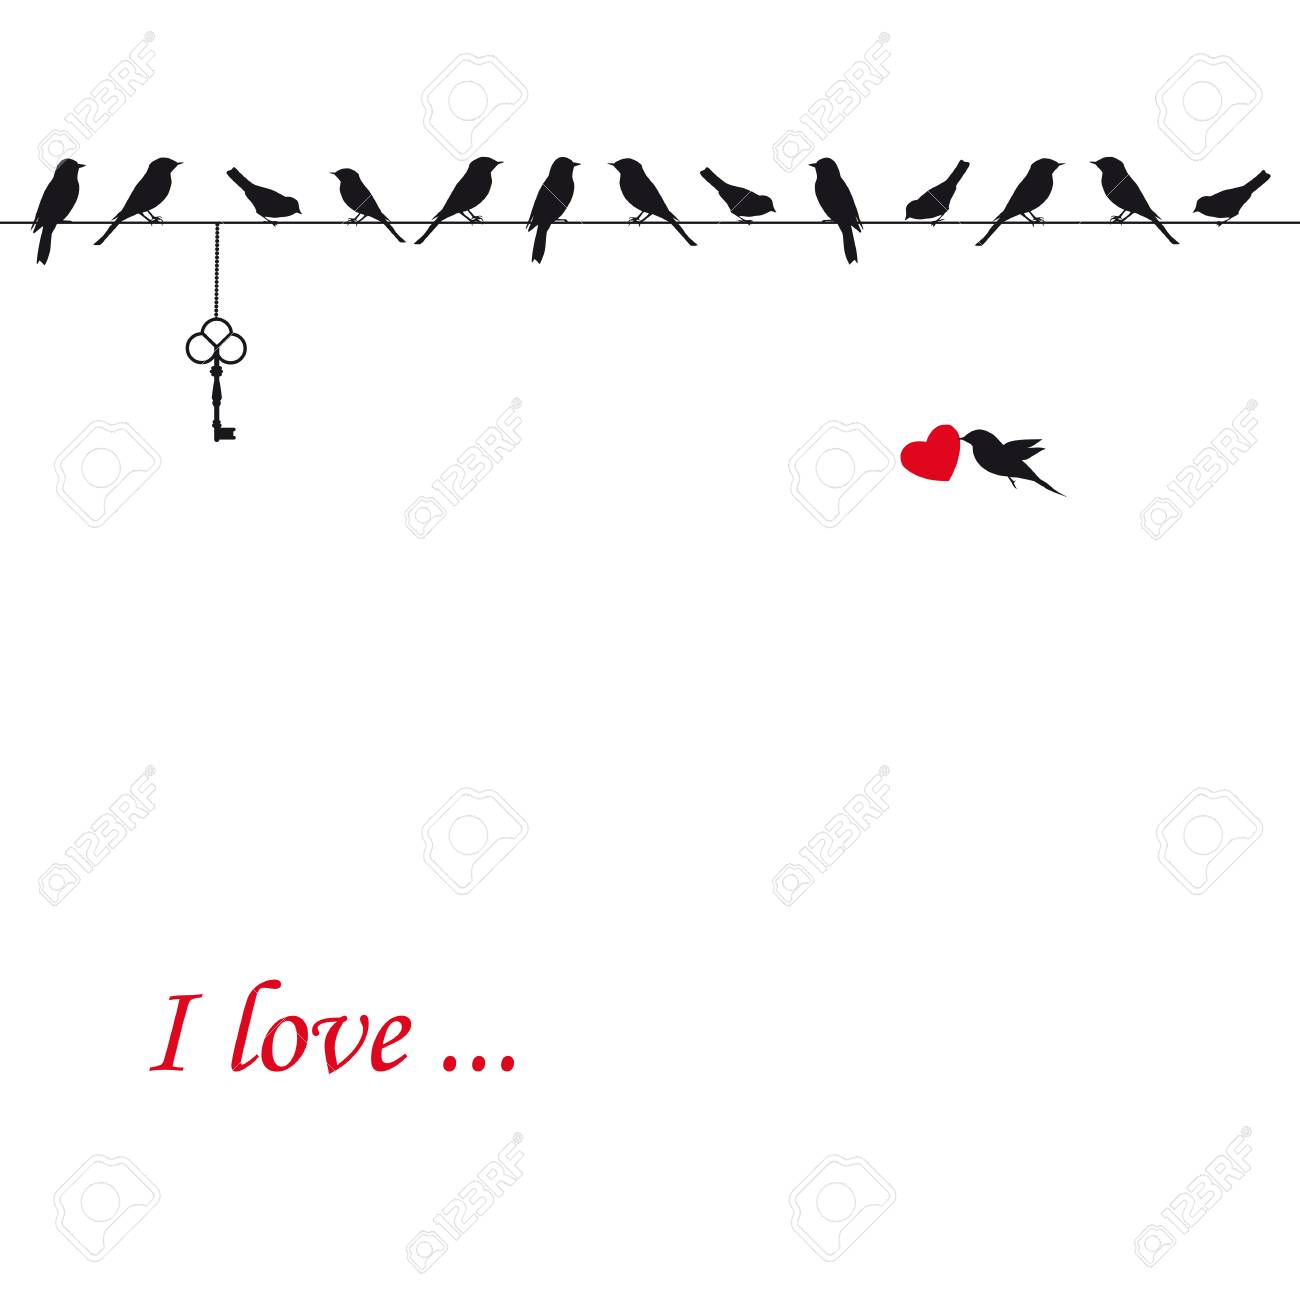 Card on Valentine s day Stock Vector - 24124951